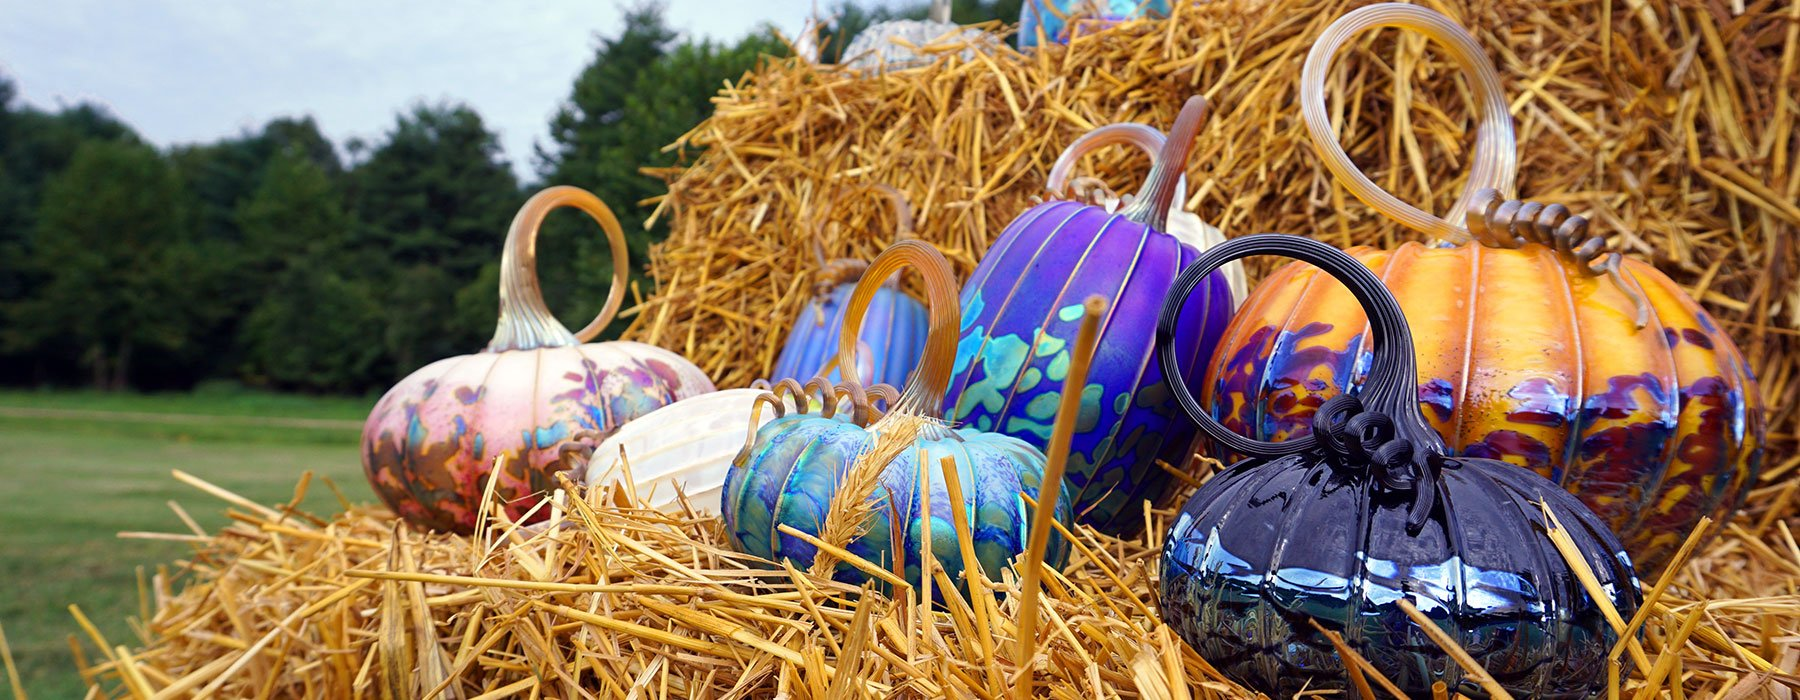 Glass pumpkins sitting on a hay bale